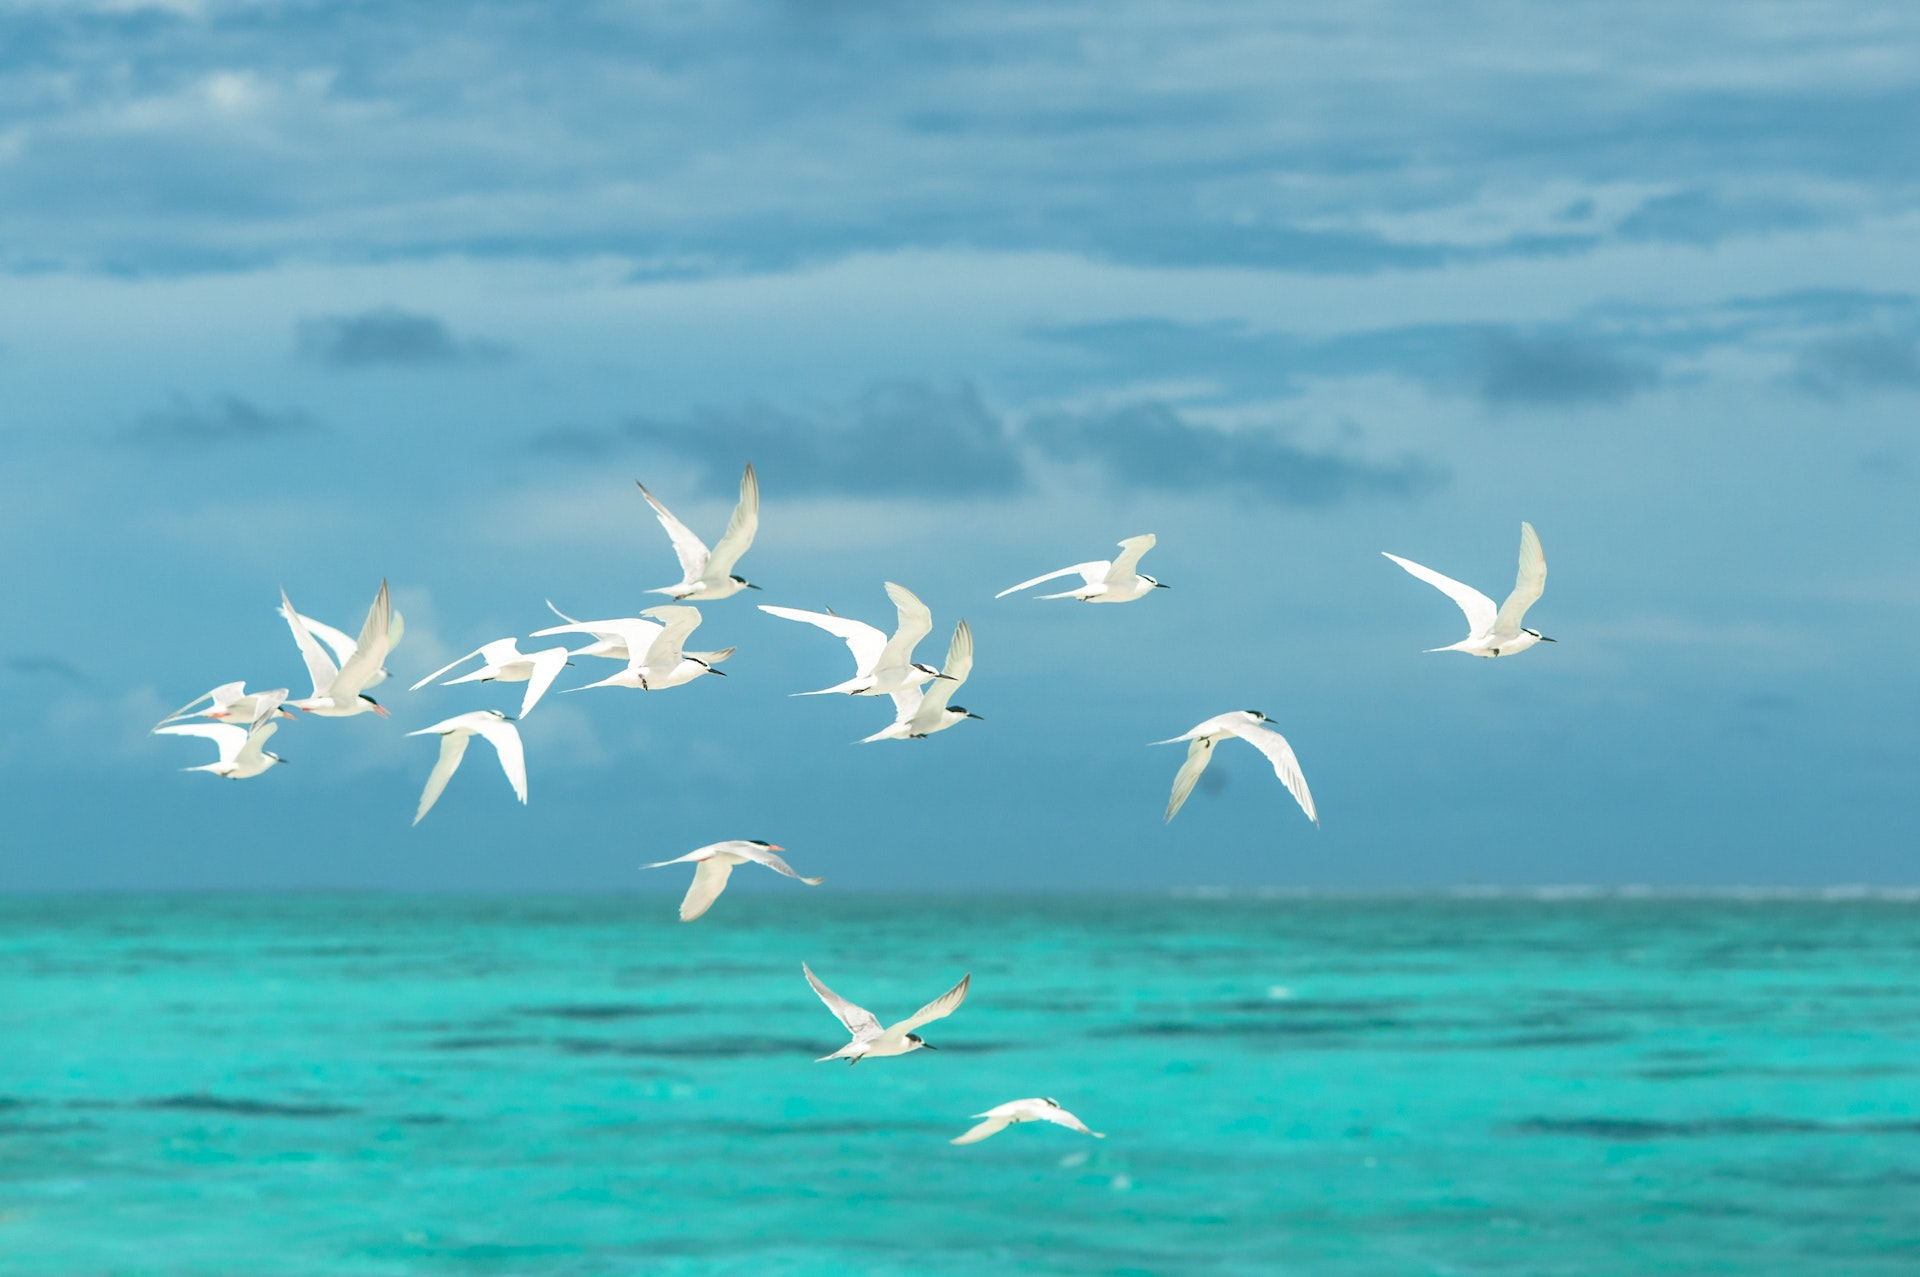 Flock of White Seagulls Flying over the Large Body of Water